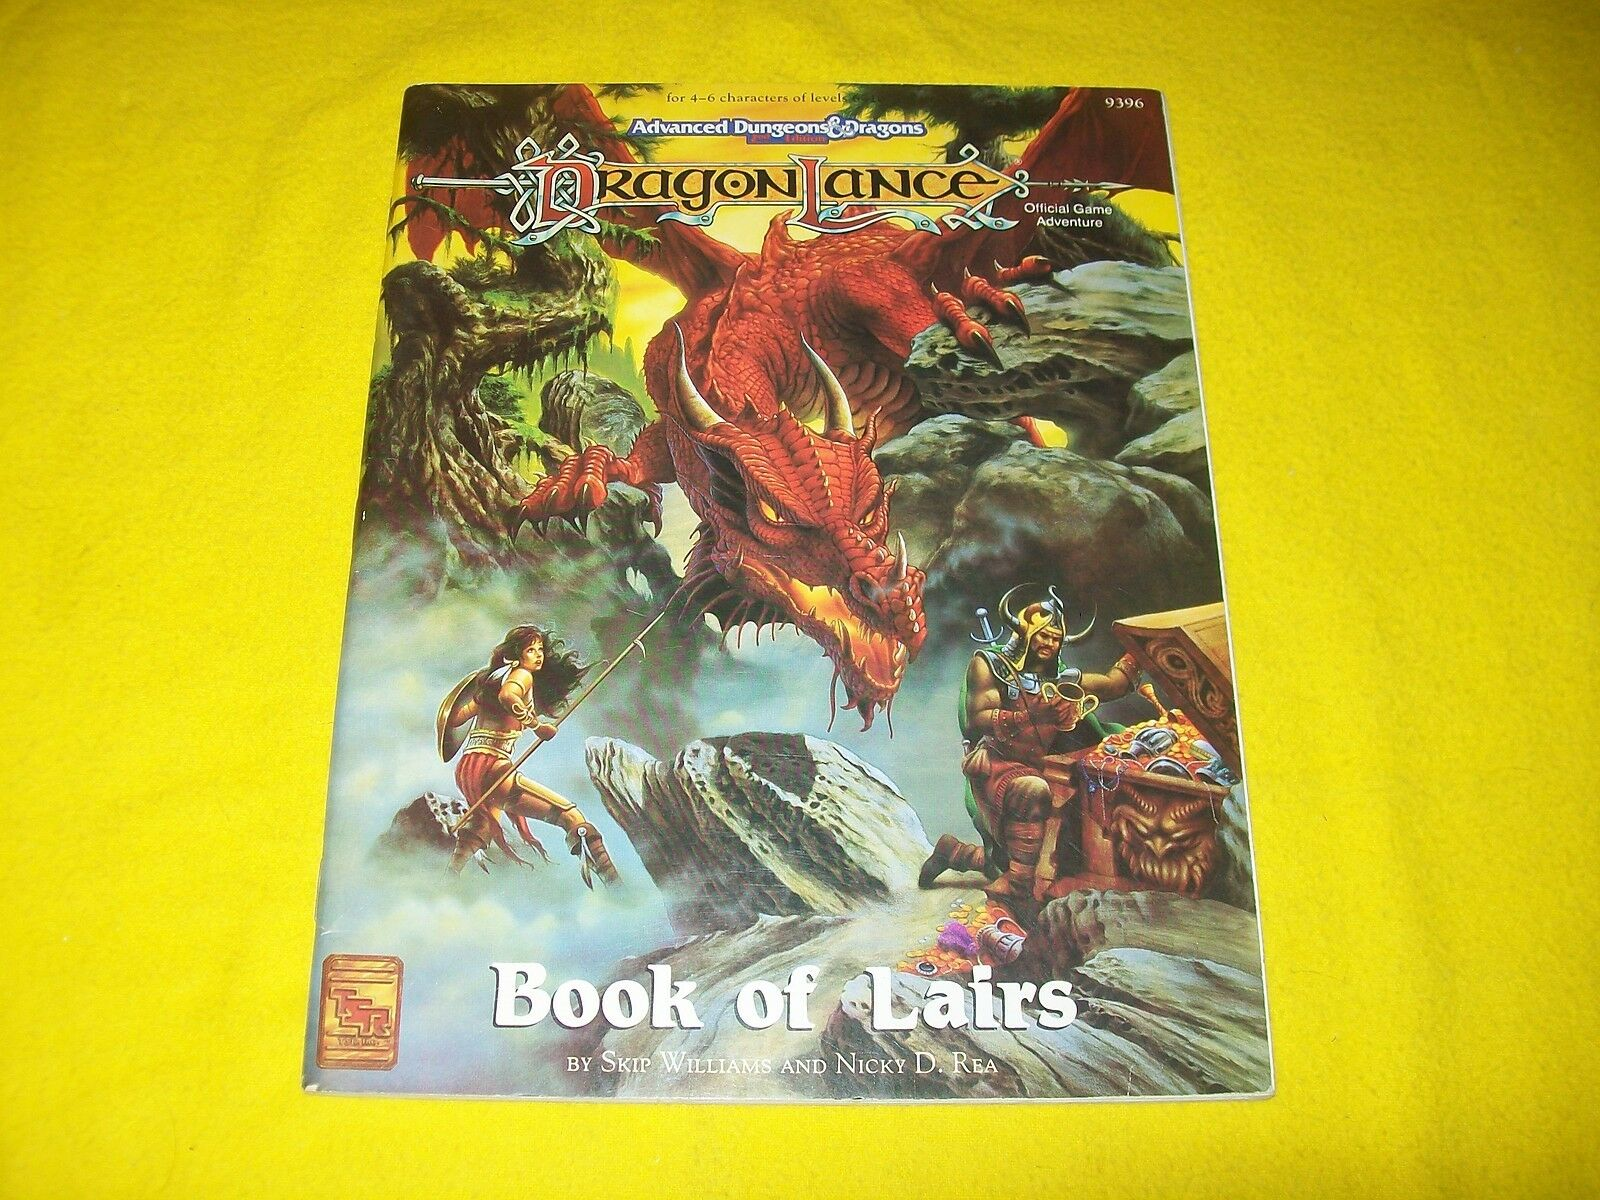 BOOK OF LAIRS DRAGONLANCE DUNGEONS & DRAGONS AD&D 2ND EDITION TSR 9396 - 2